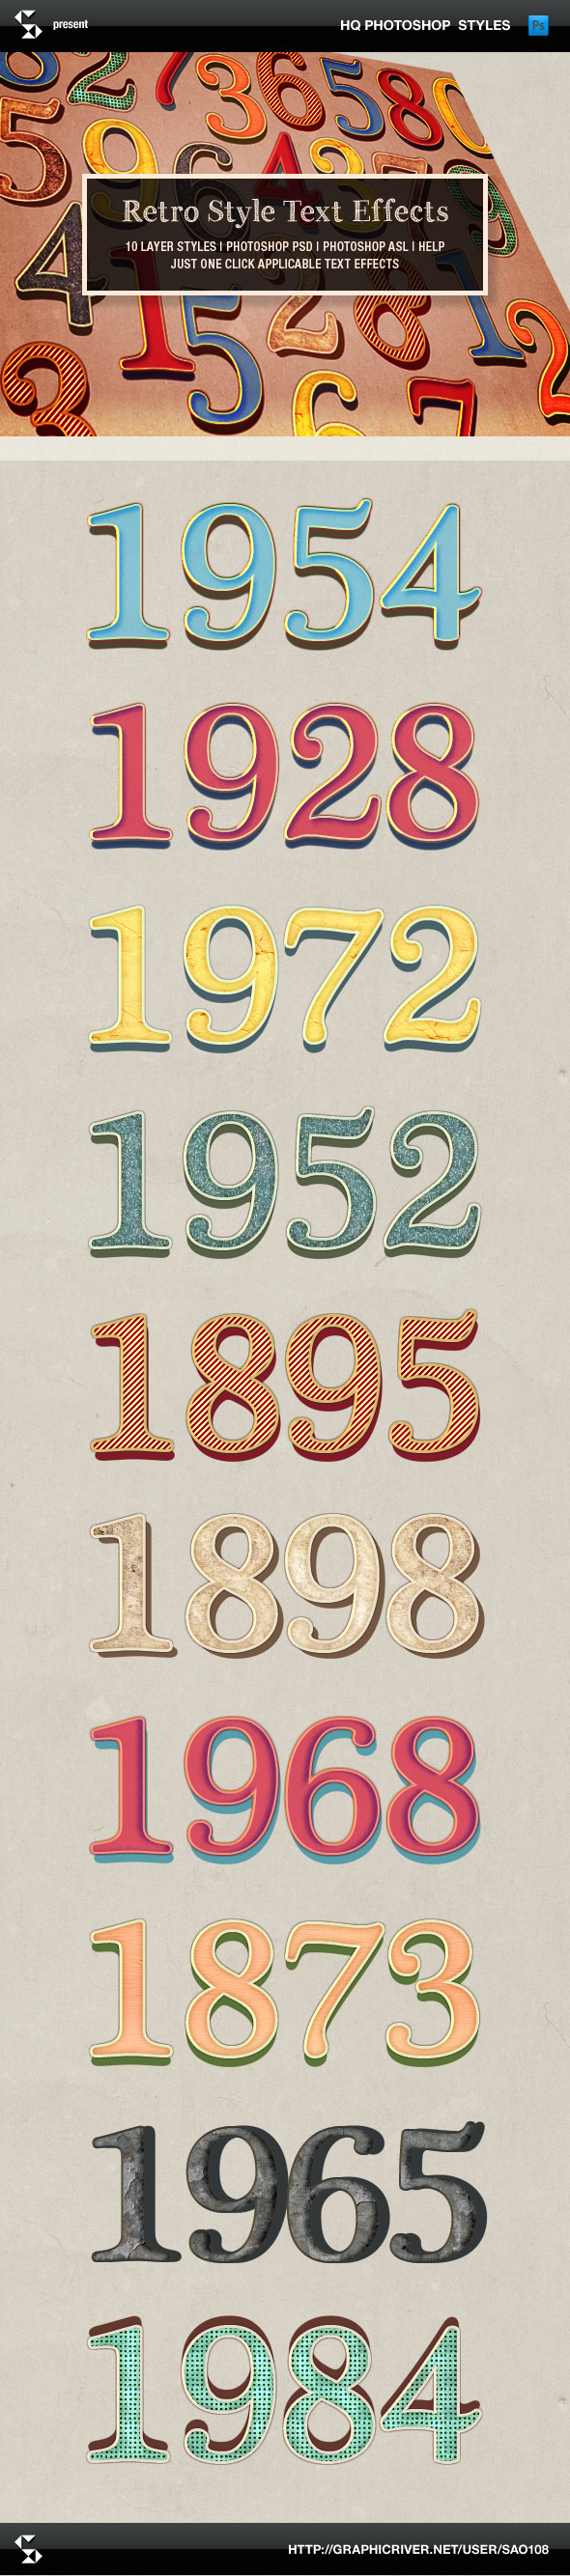 Retro Style Text Effects - Text Effects Styles